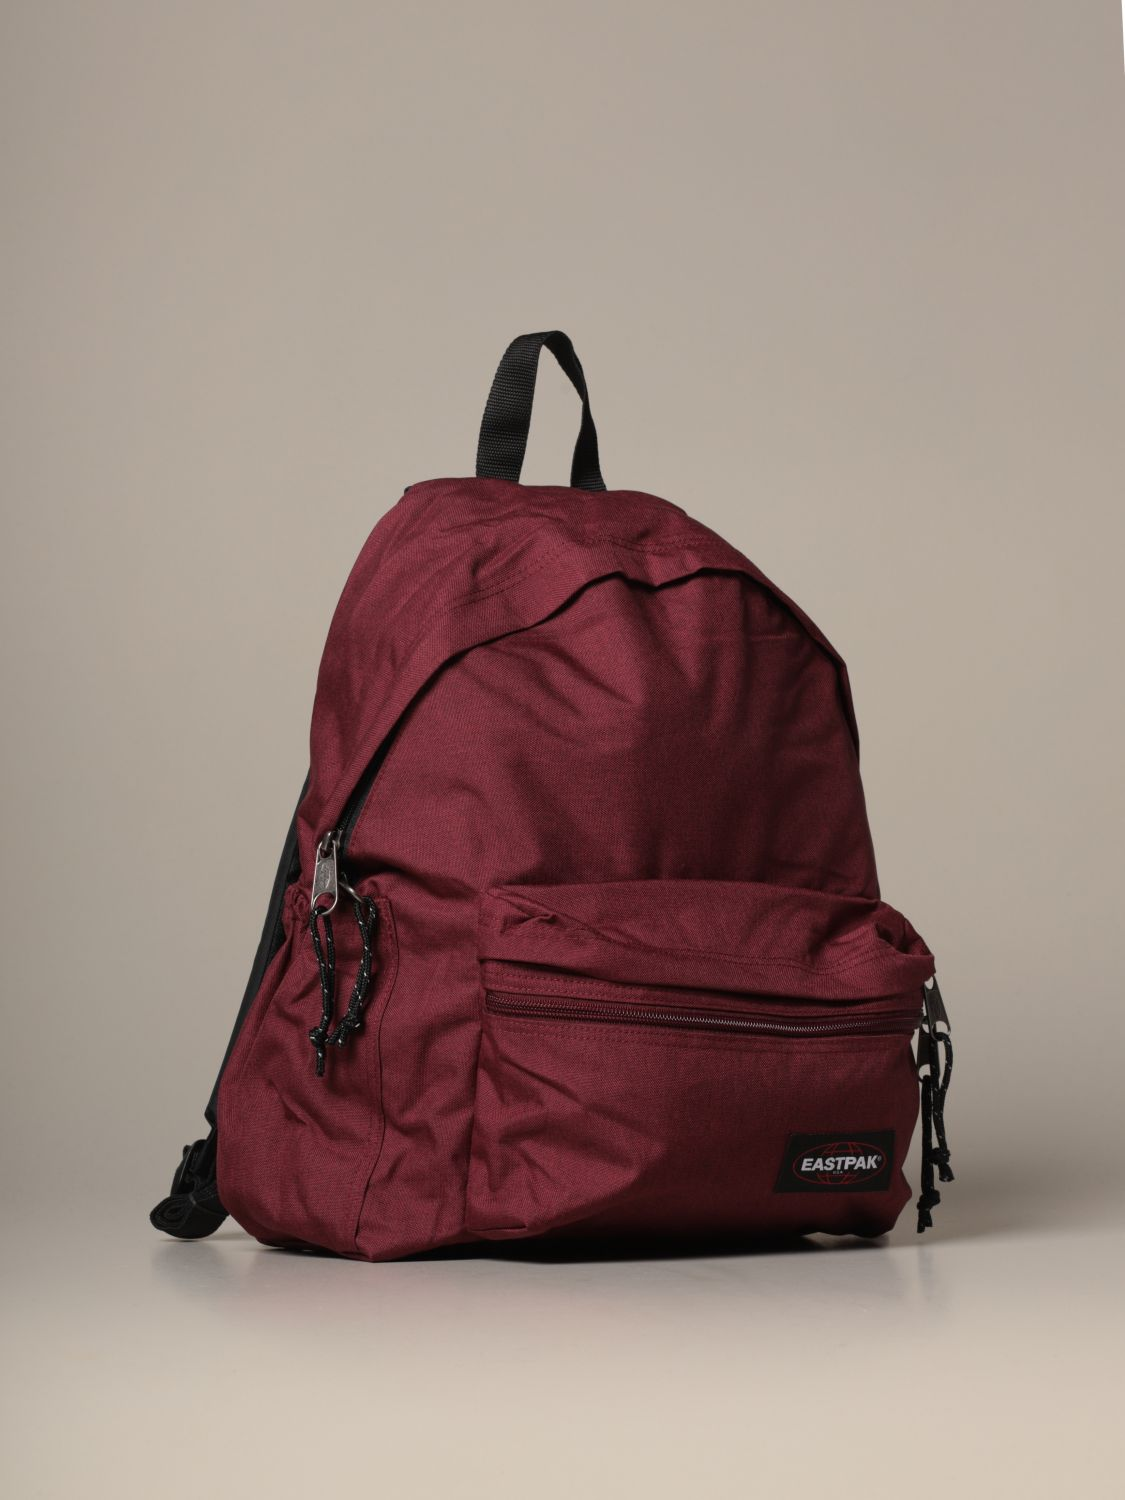 Backpack Eastpak: Padded Zippl'r Eastpak backpack in light canvas with logo burgundy 3